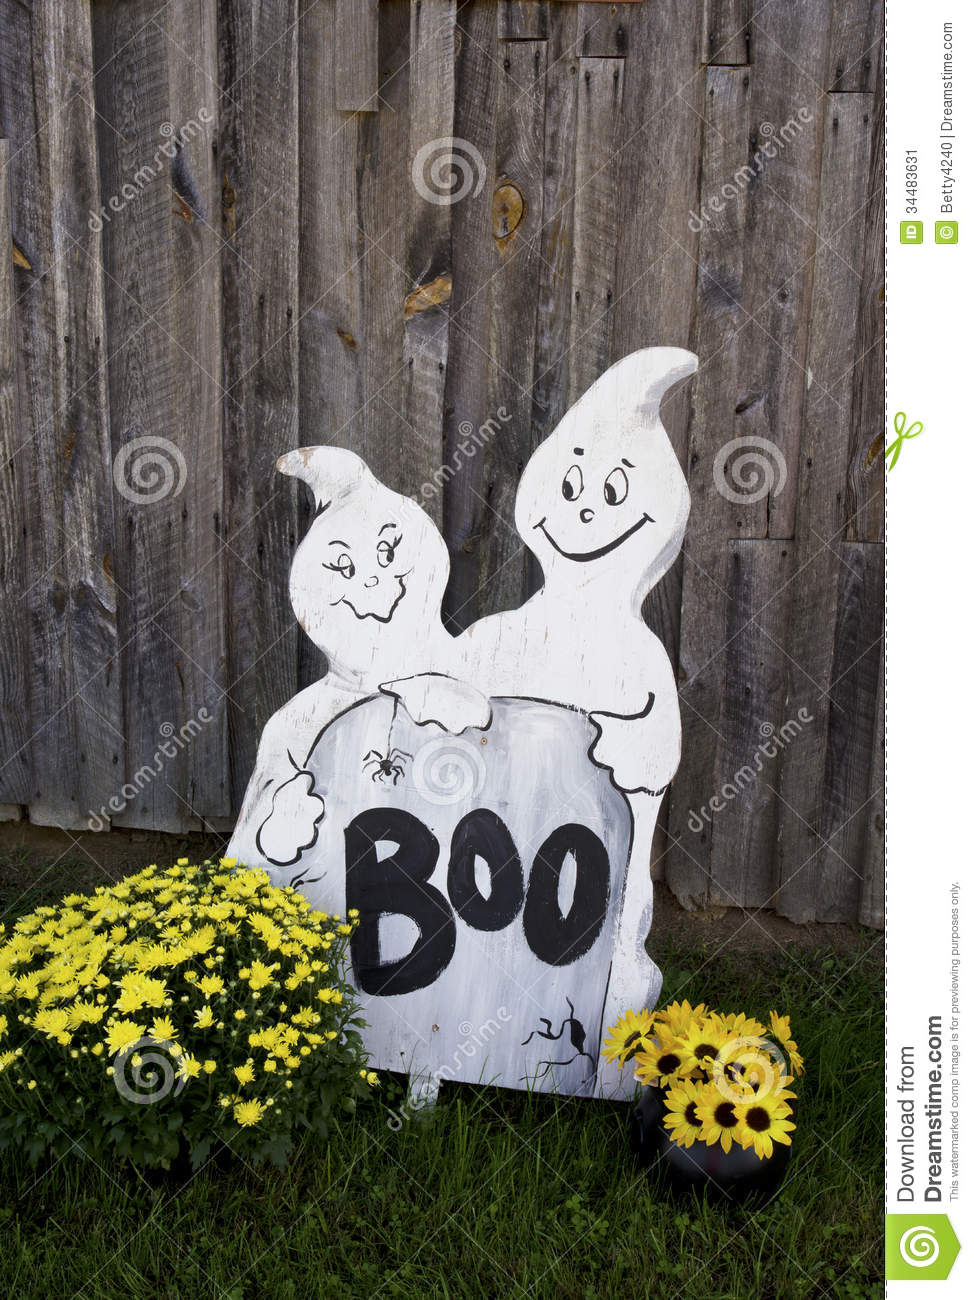 Barn Decorations Ghosts Halloween Mums Old Wooden ...